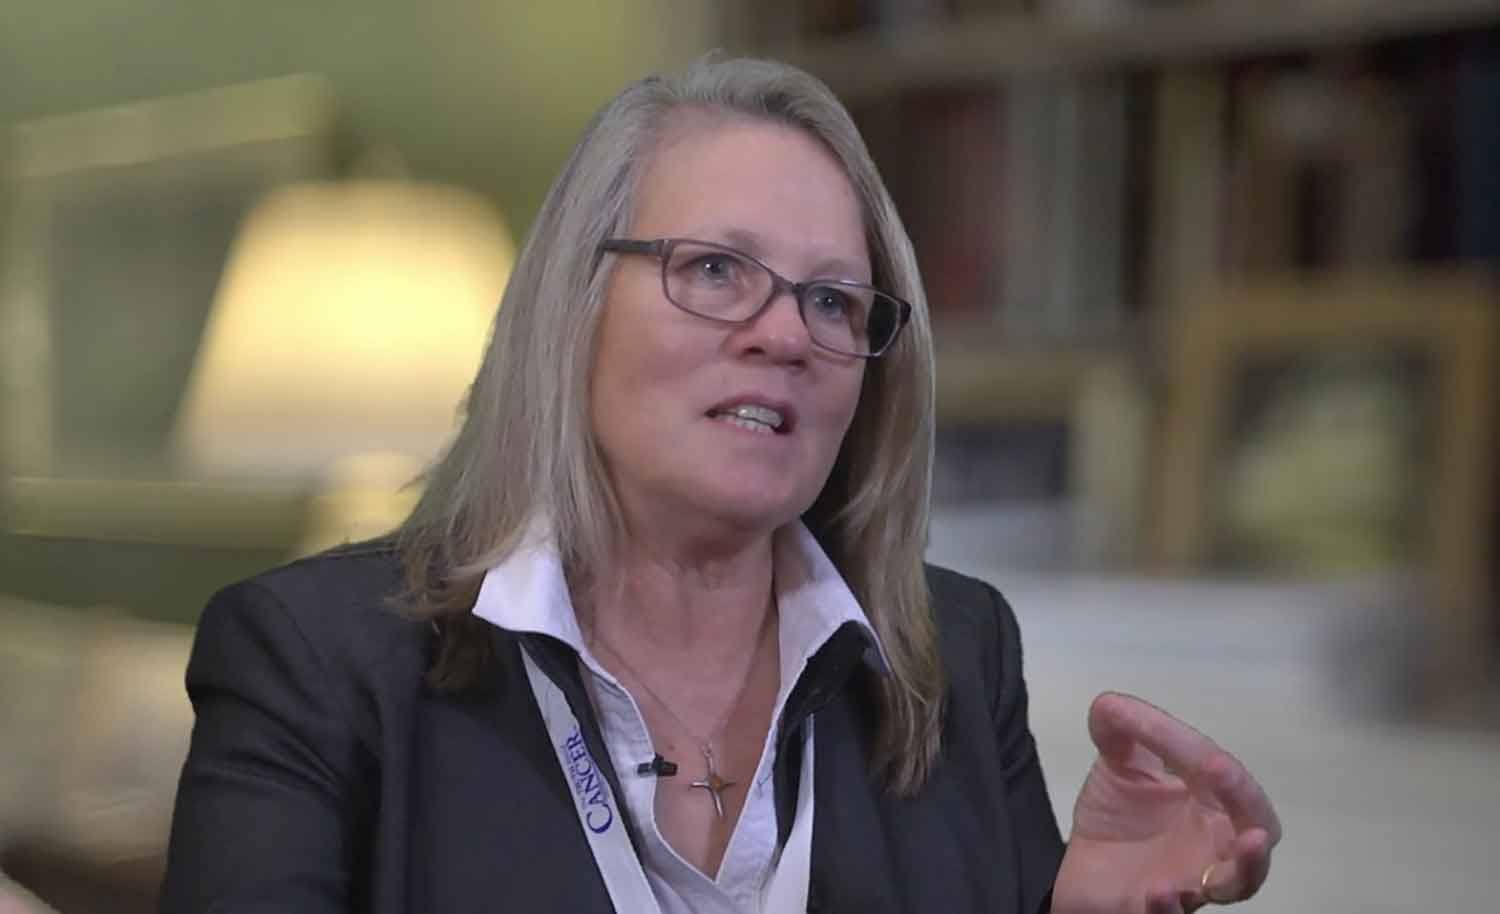 Top US Virologist Blows Whistle On COVID-19